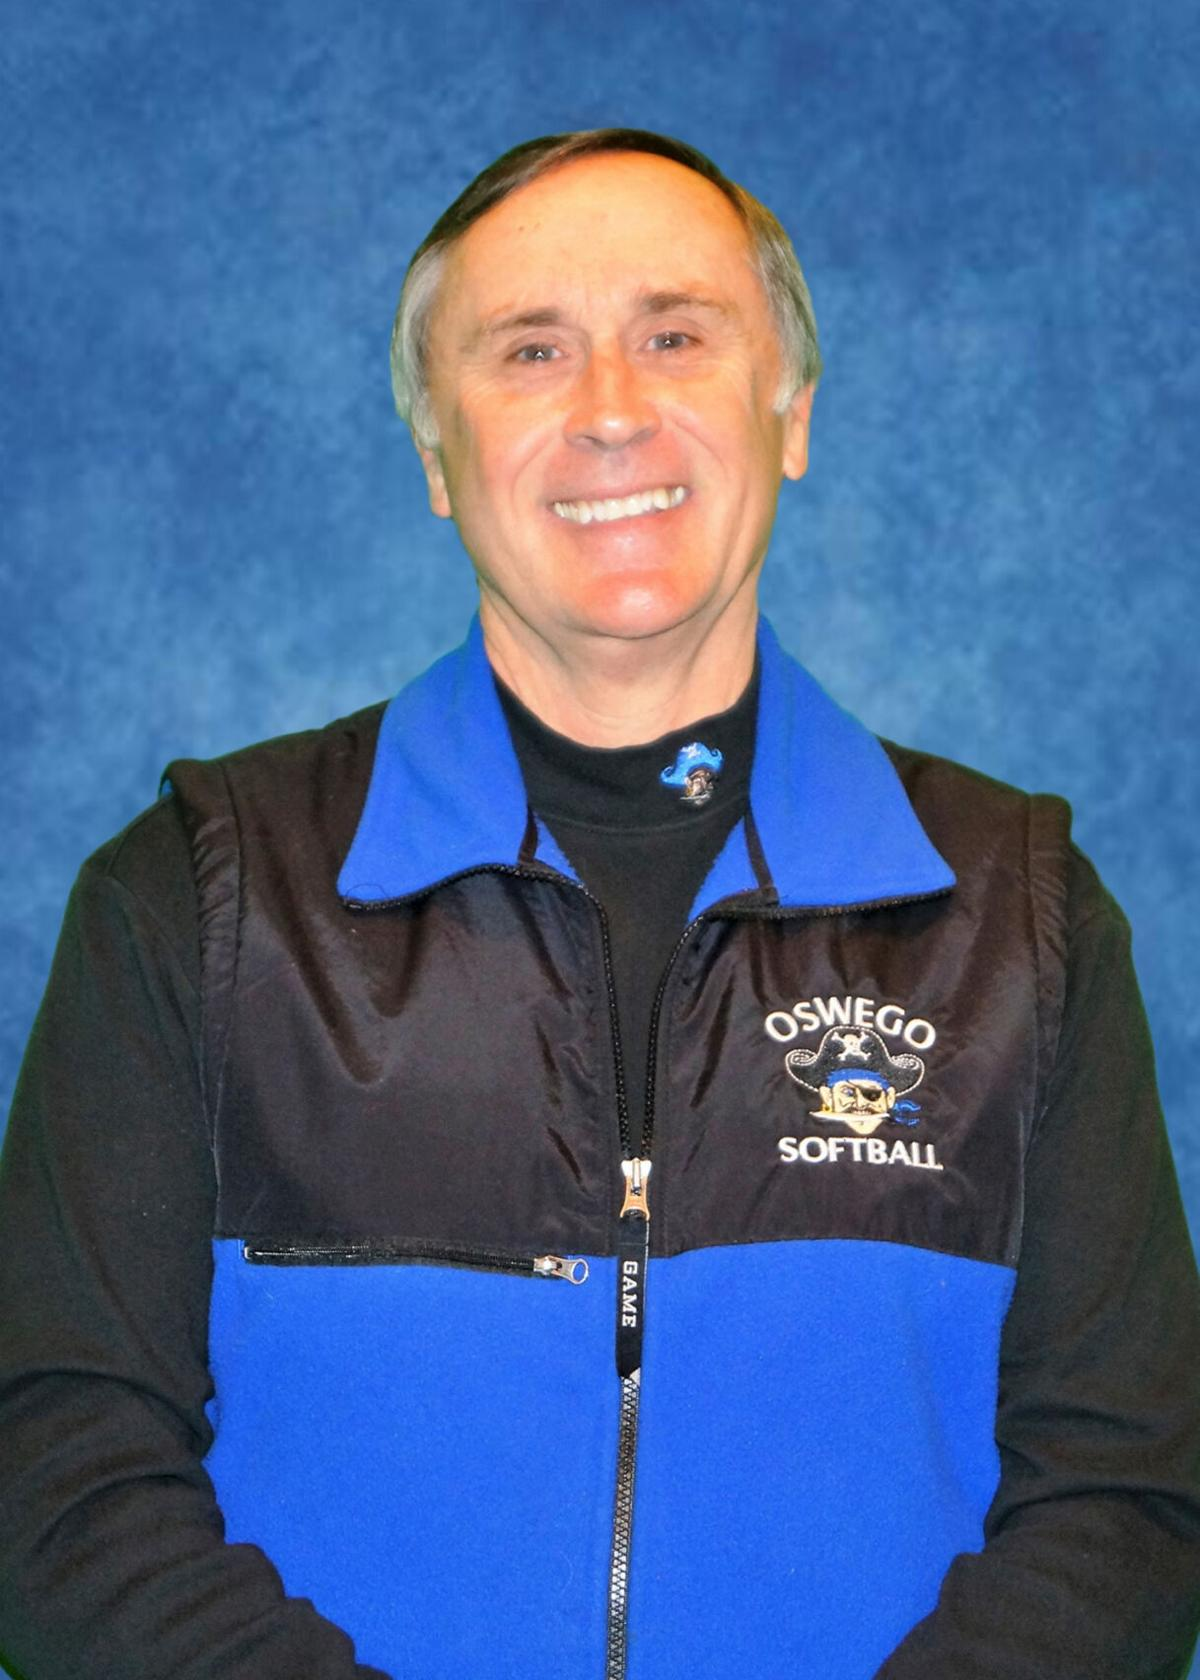 McCrobie enshrined as a member of the NYS High School Softball Hall of Fame